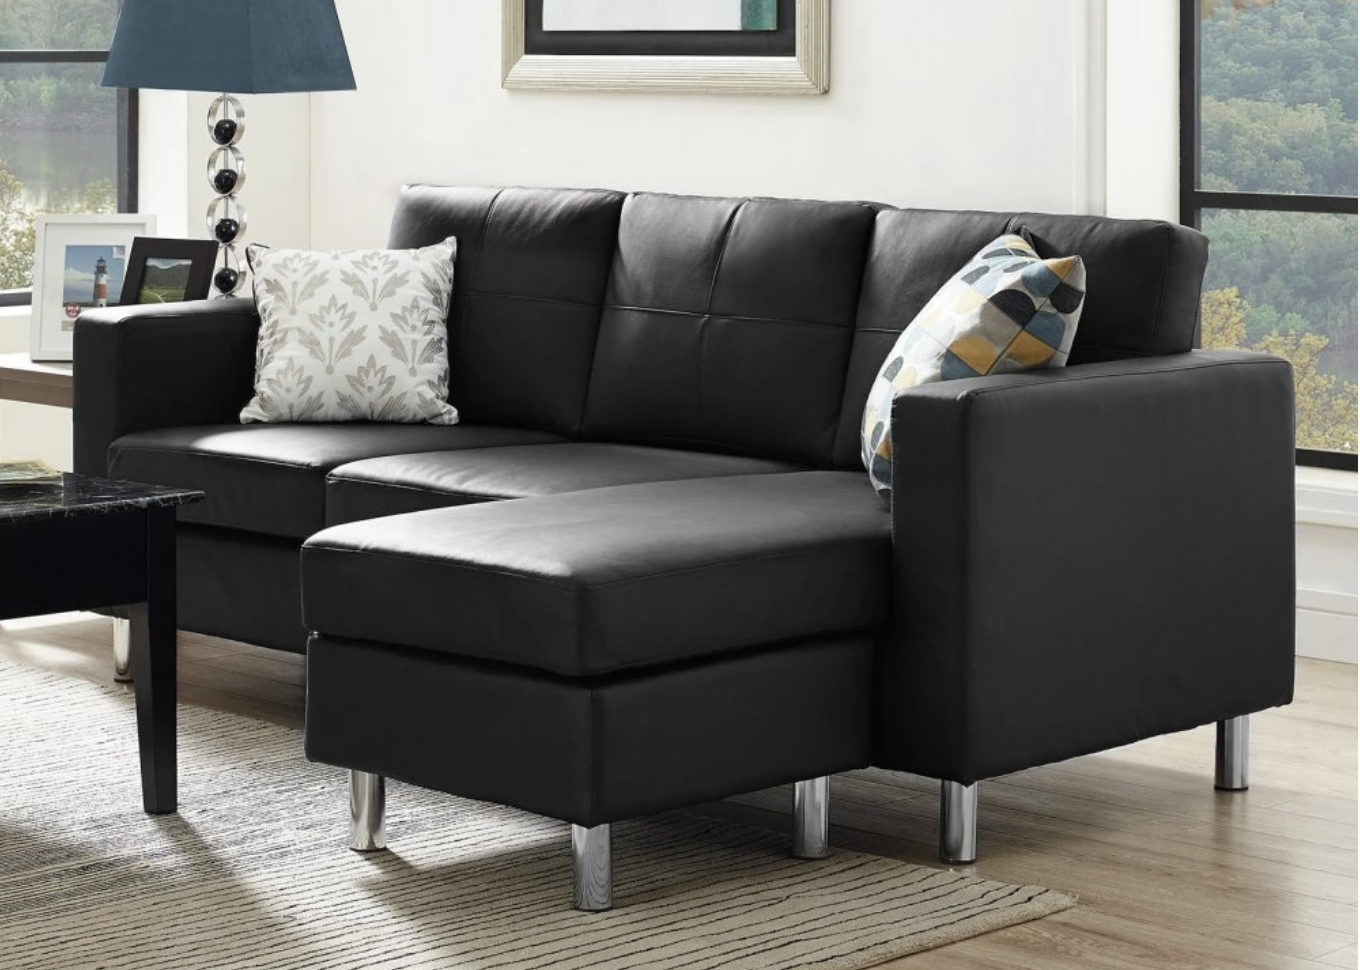 75 Modern Sectional Sofas For Small Spaces (2018) Inside Well Liked Sectional Sofas For Small Doorways (View 9 of 15)